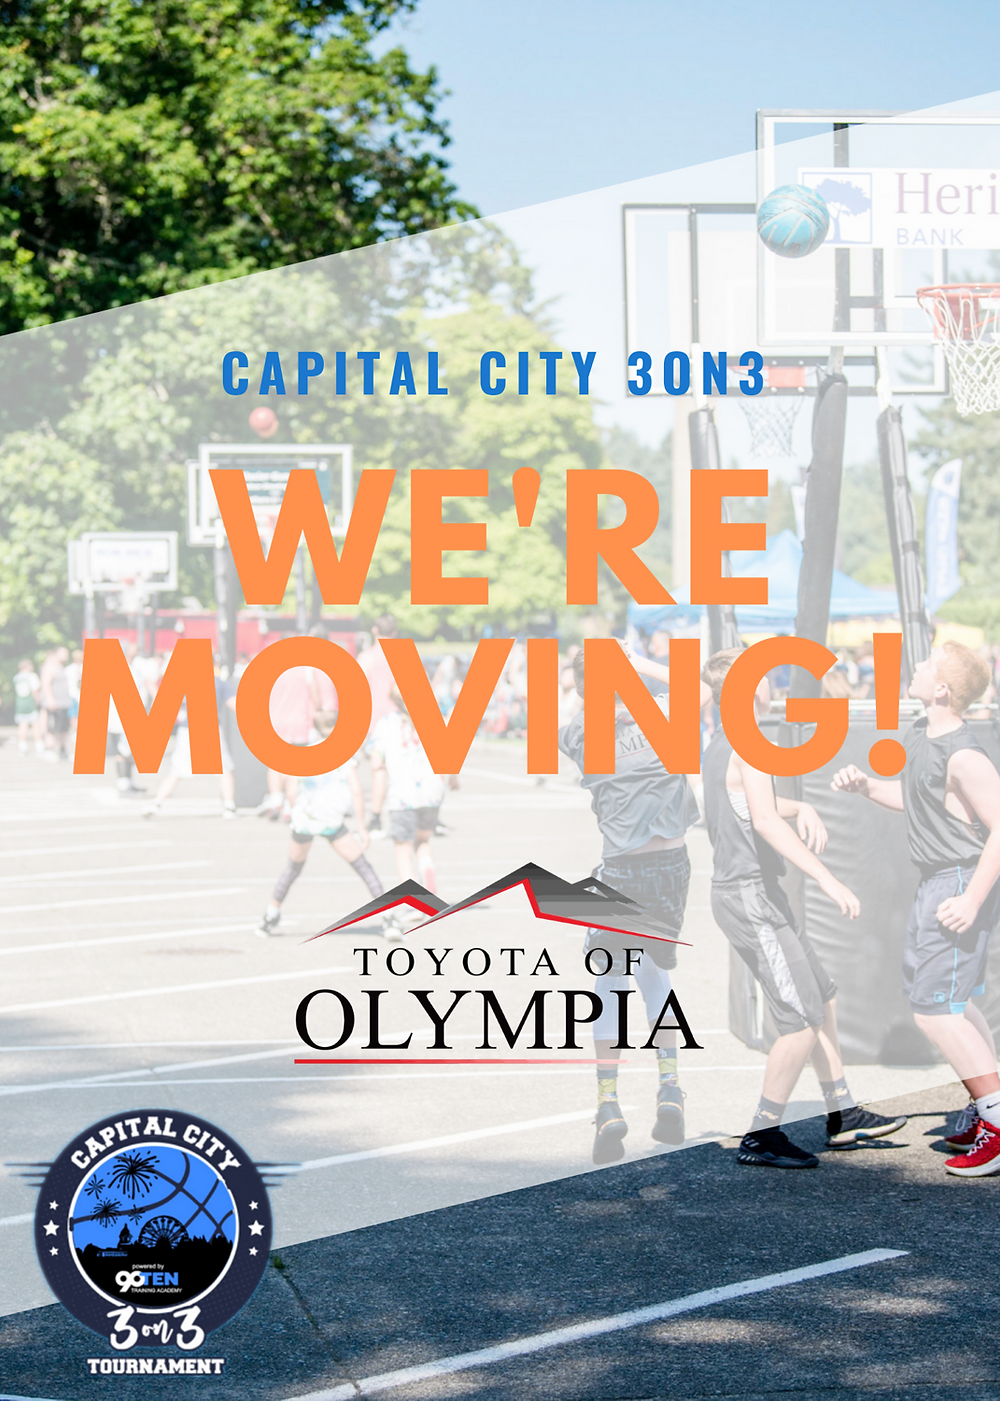 We're moving photo with 3on3 basketball in background, Toyota of Olympia logo, and Capital City 3on3 logo